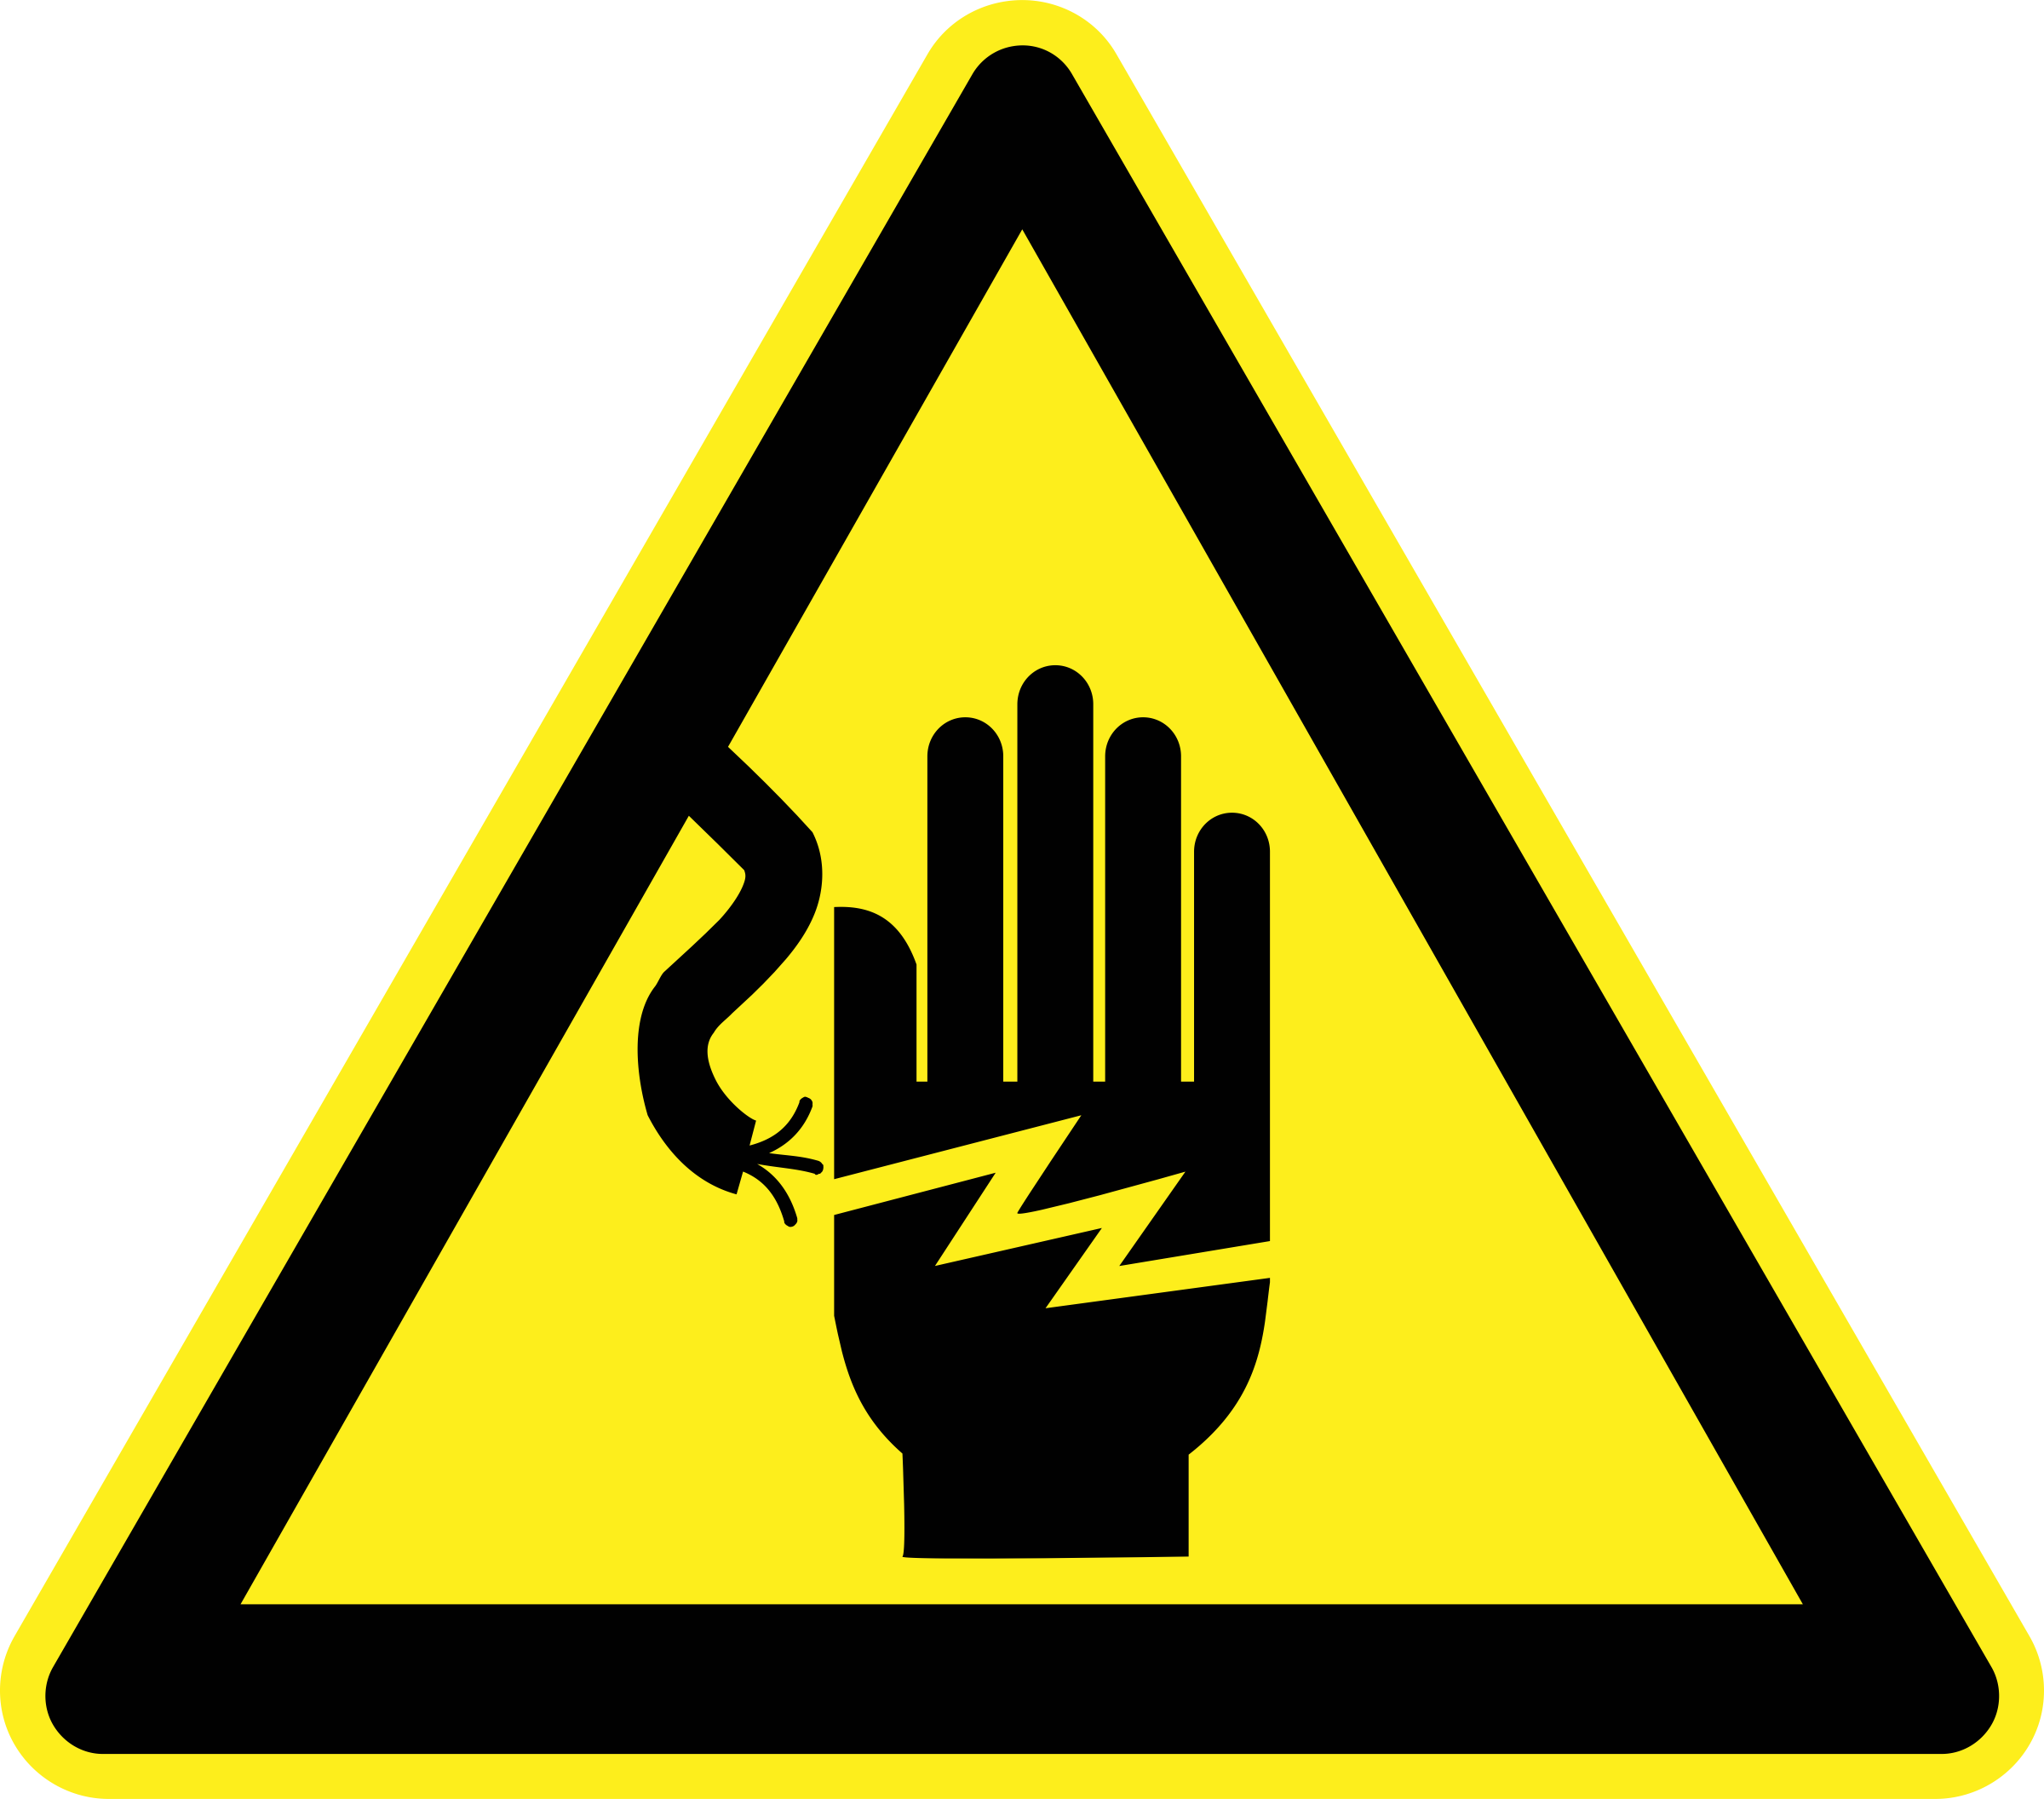 High Voltage Hazard Warning Sign by h0us3s